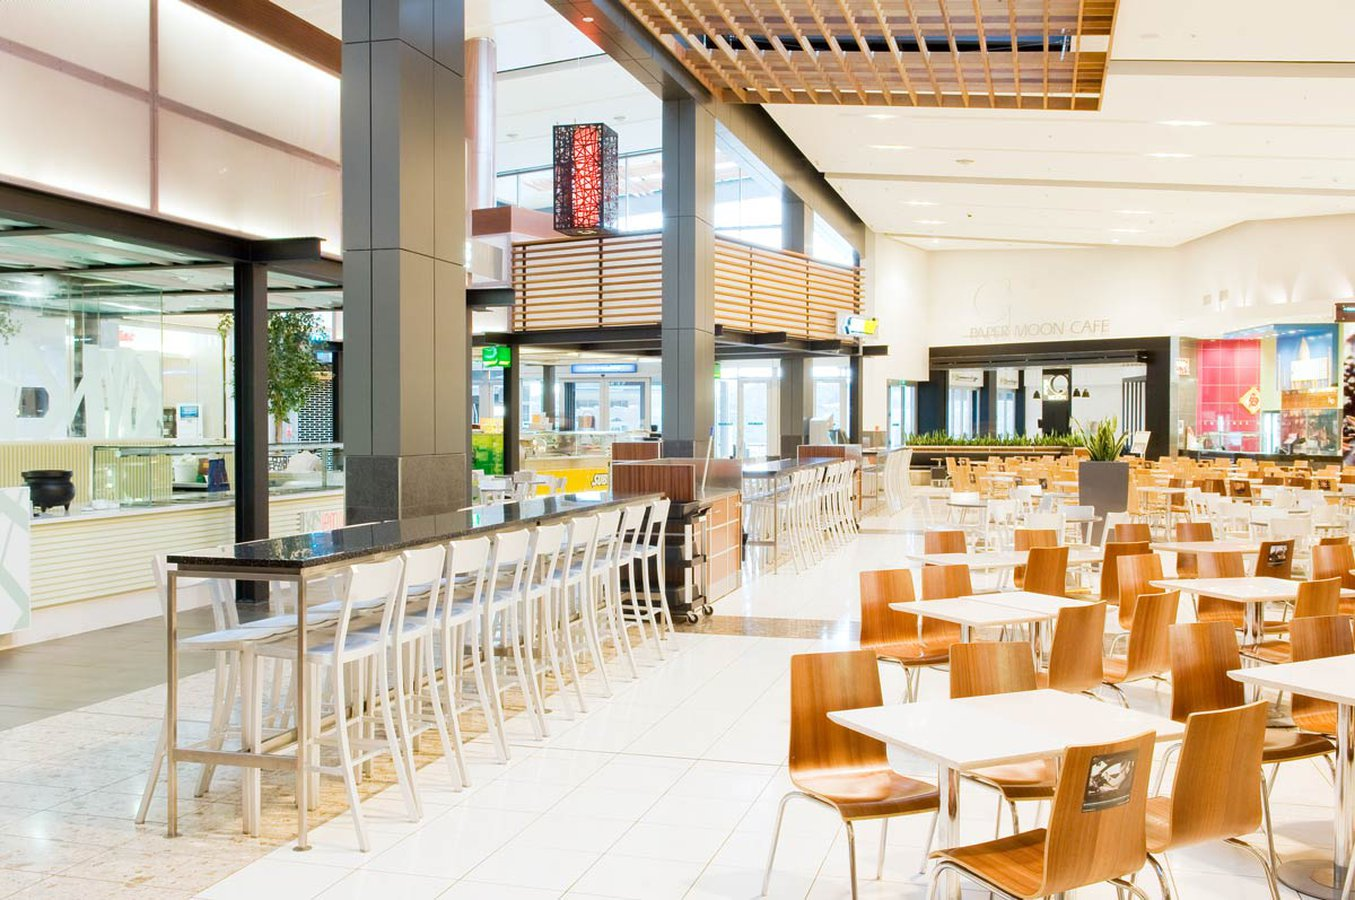 The Food Court At Westfield Albany Called For Commercial Furniture That  Could Appeal To A Wide Variety Of People. As Well As This, The Products  That Were ...